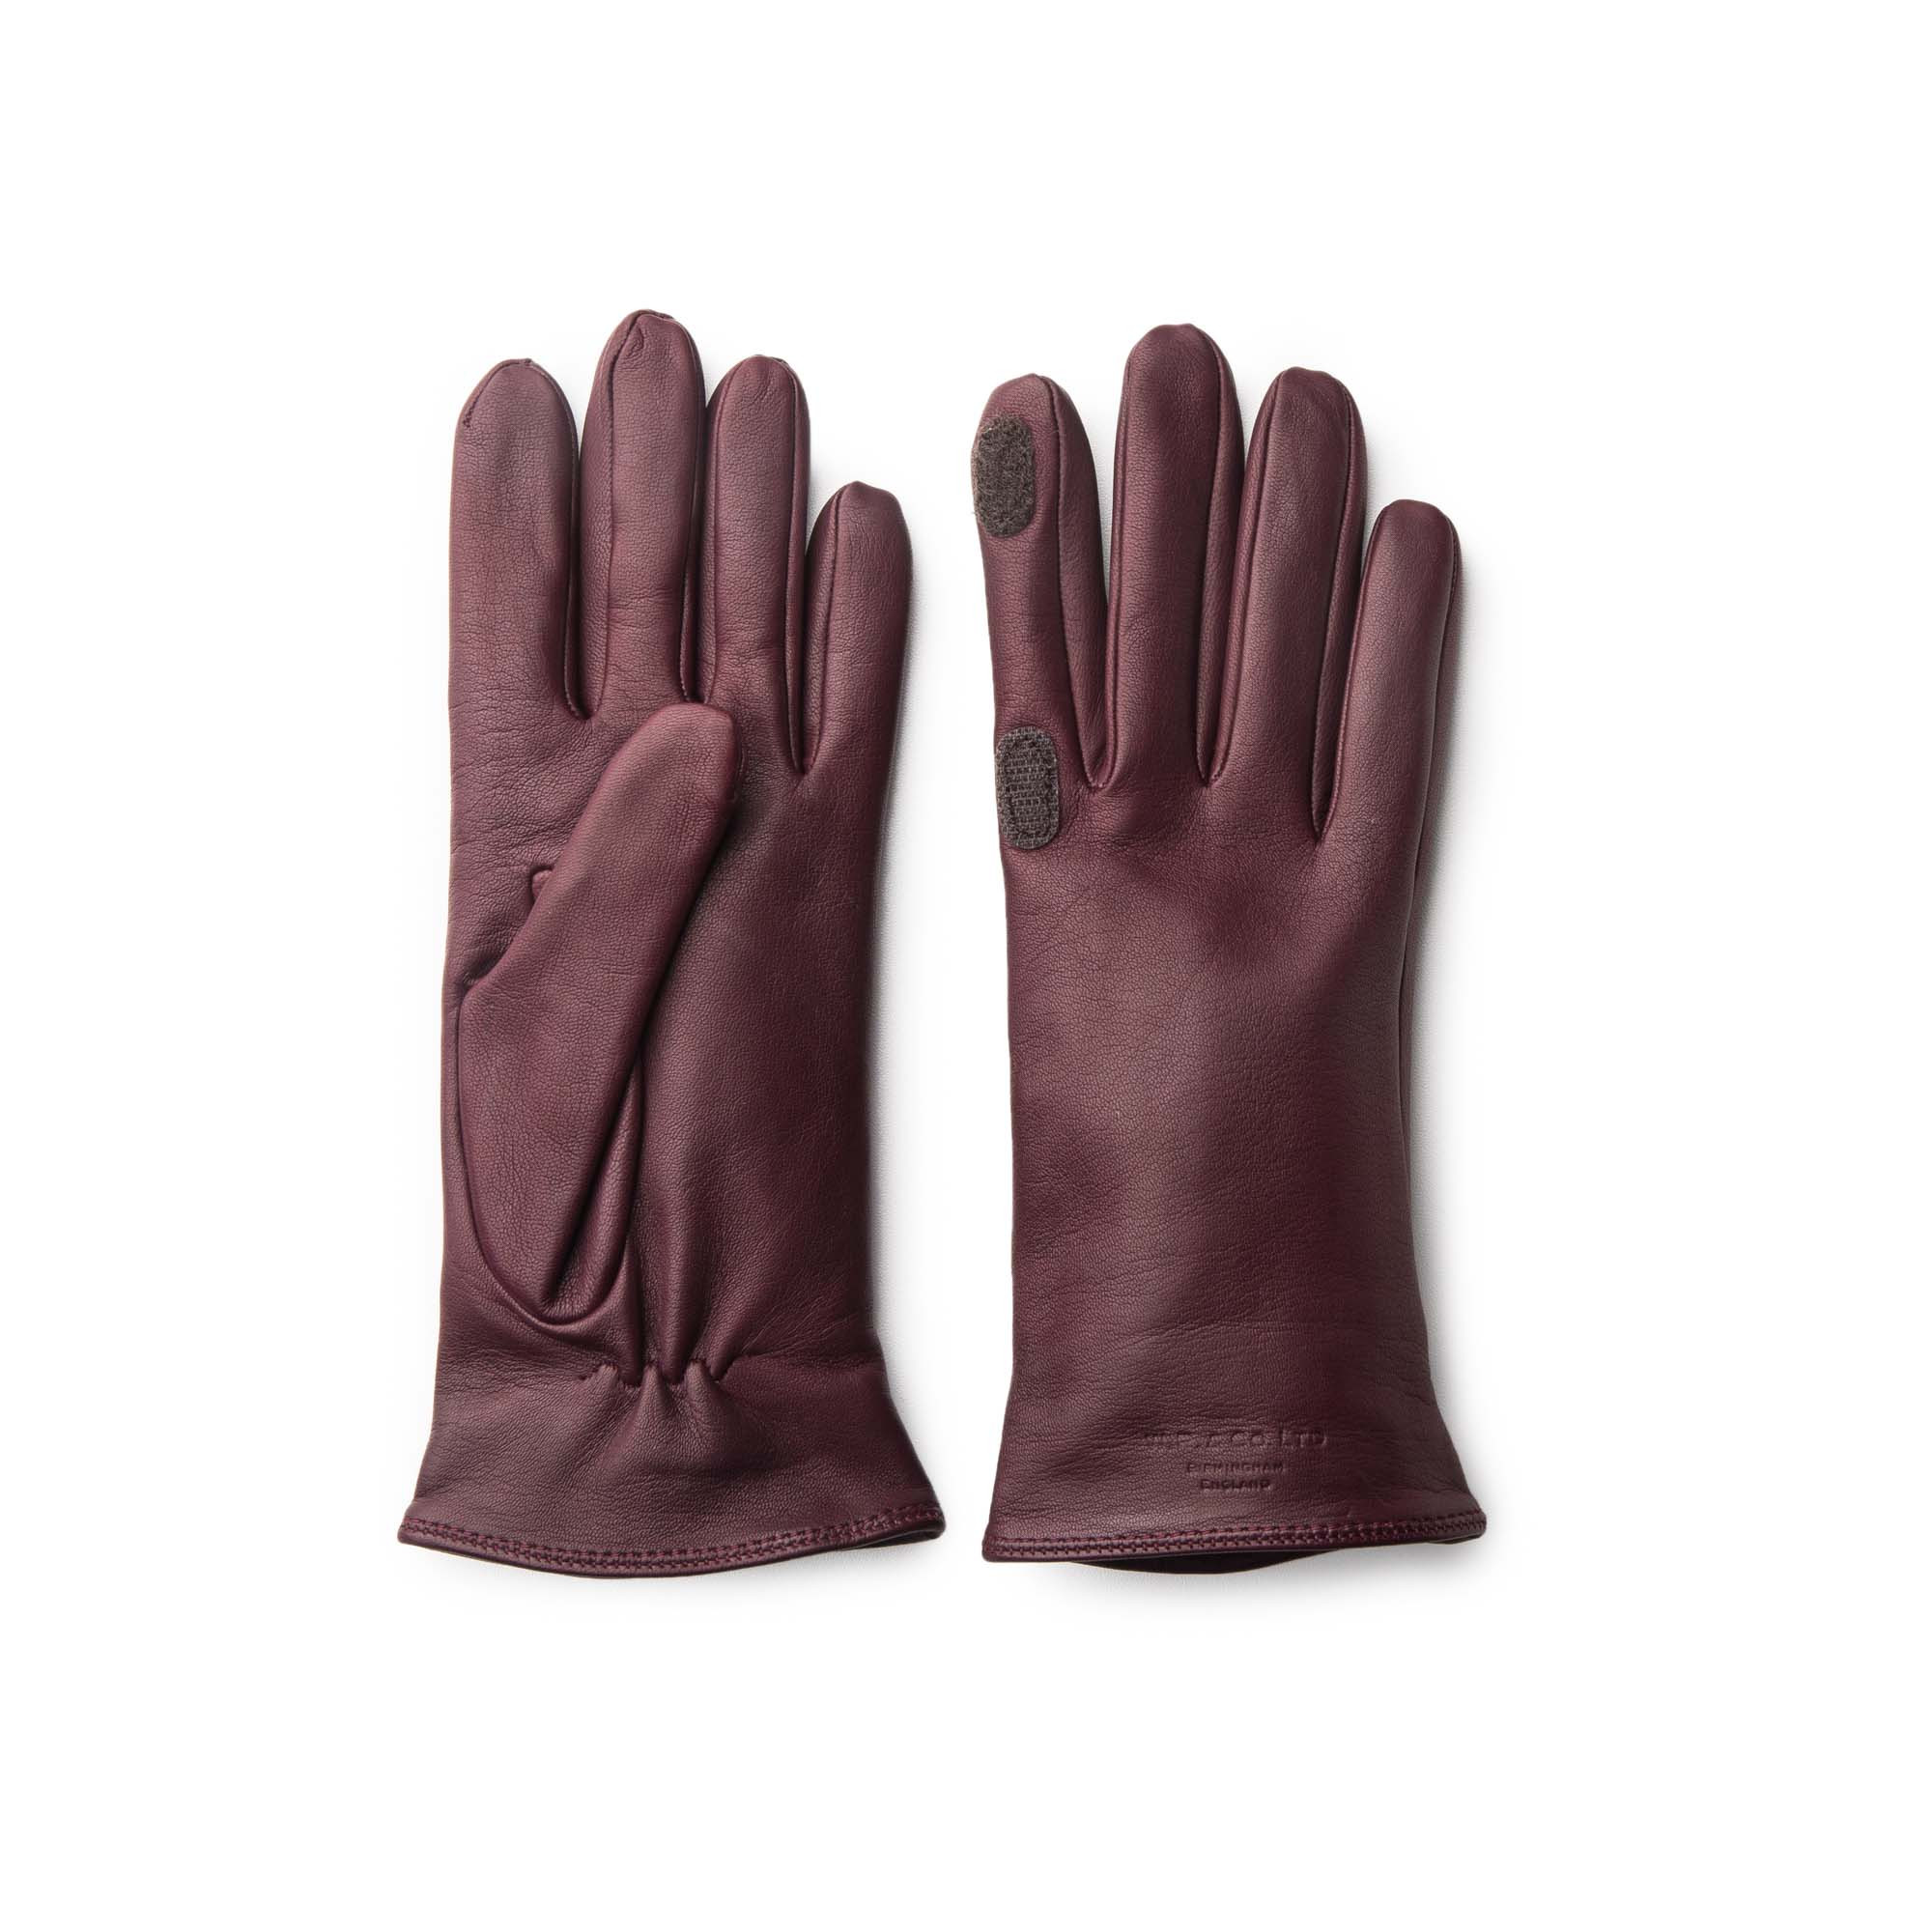 Womens leather gloves burgundy - Ladies Leather Shooting Gloves Burgundy